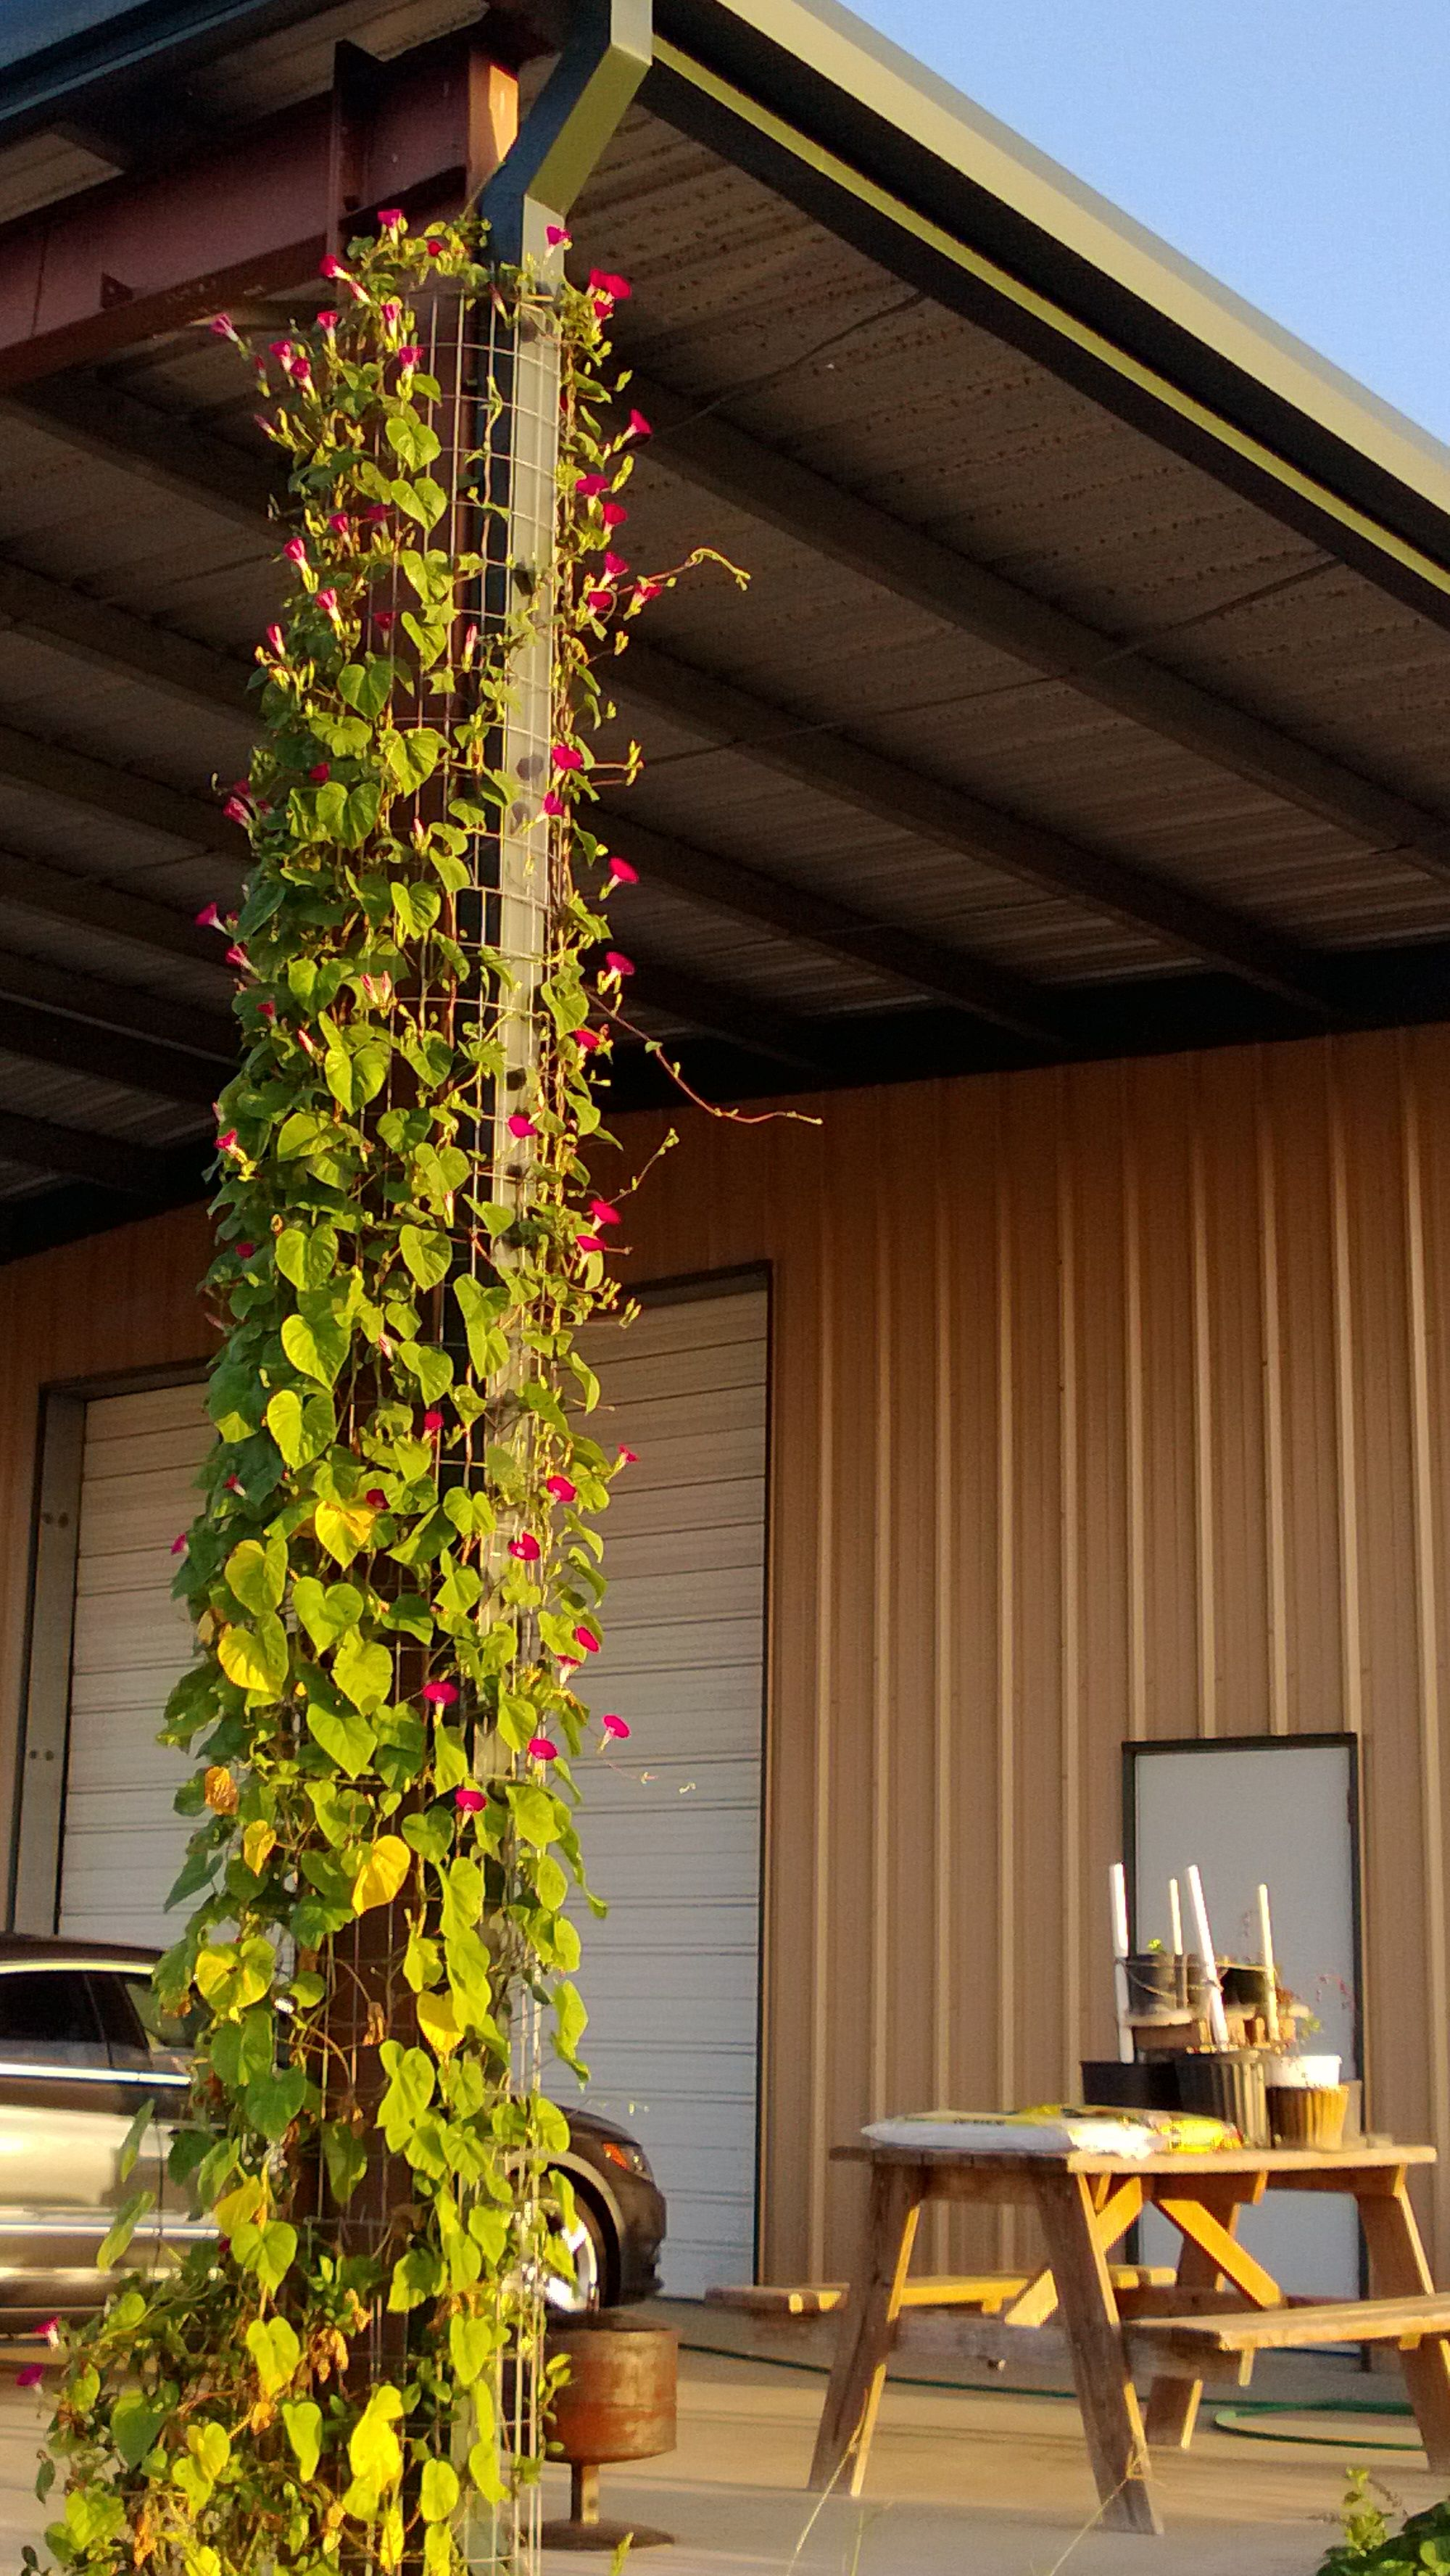 Ust 2013 Morning Glory Trellis 20 Ft Tall And Full Of